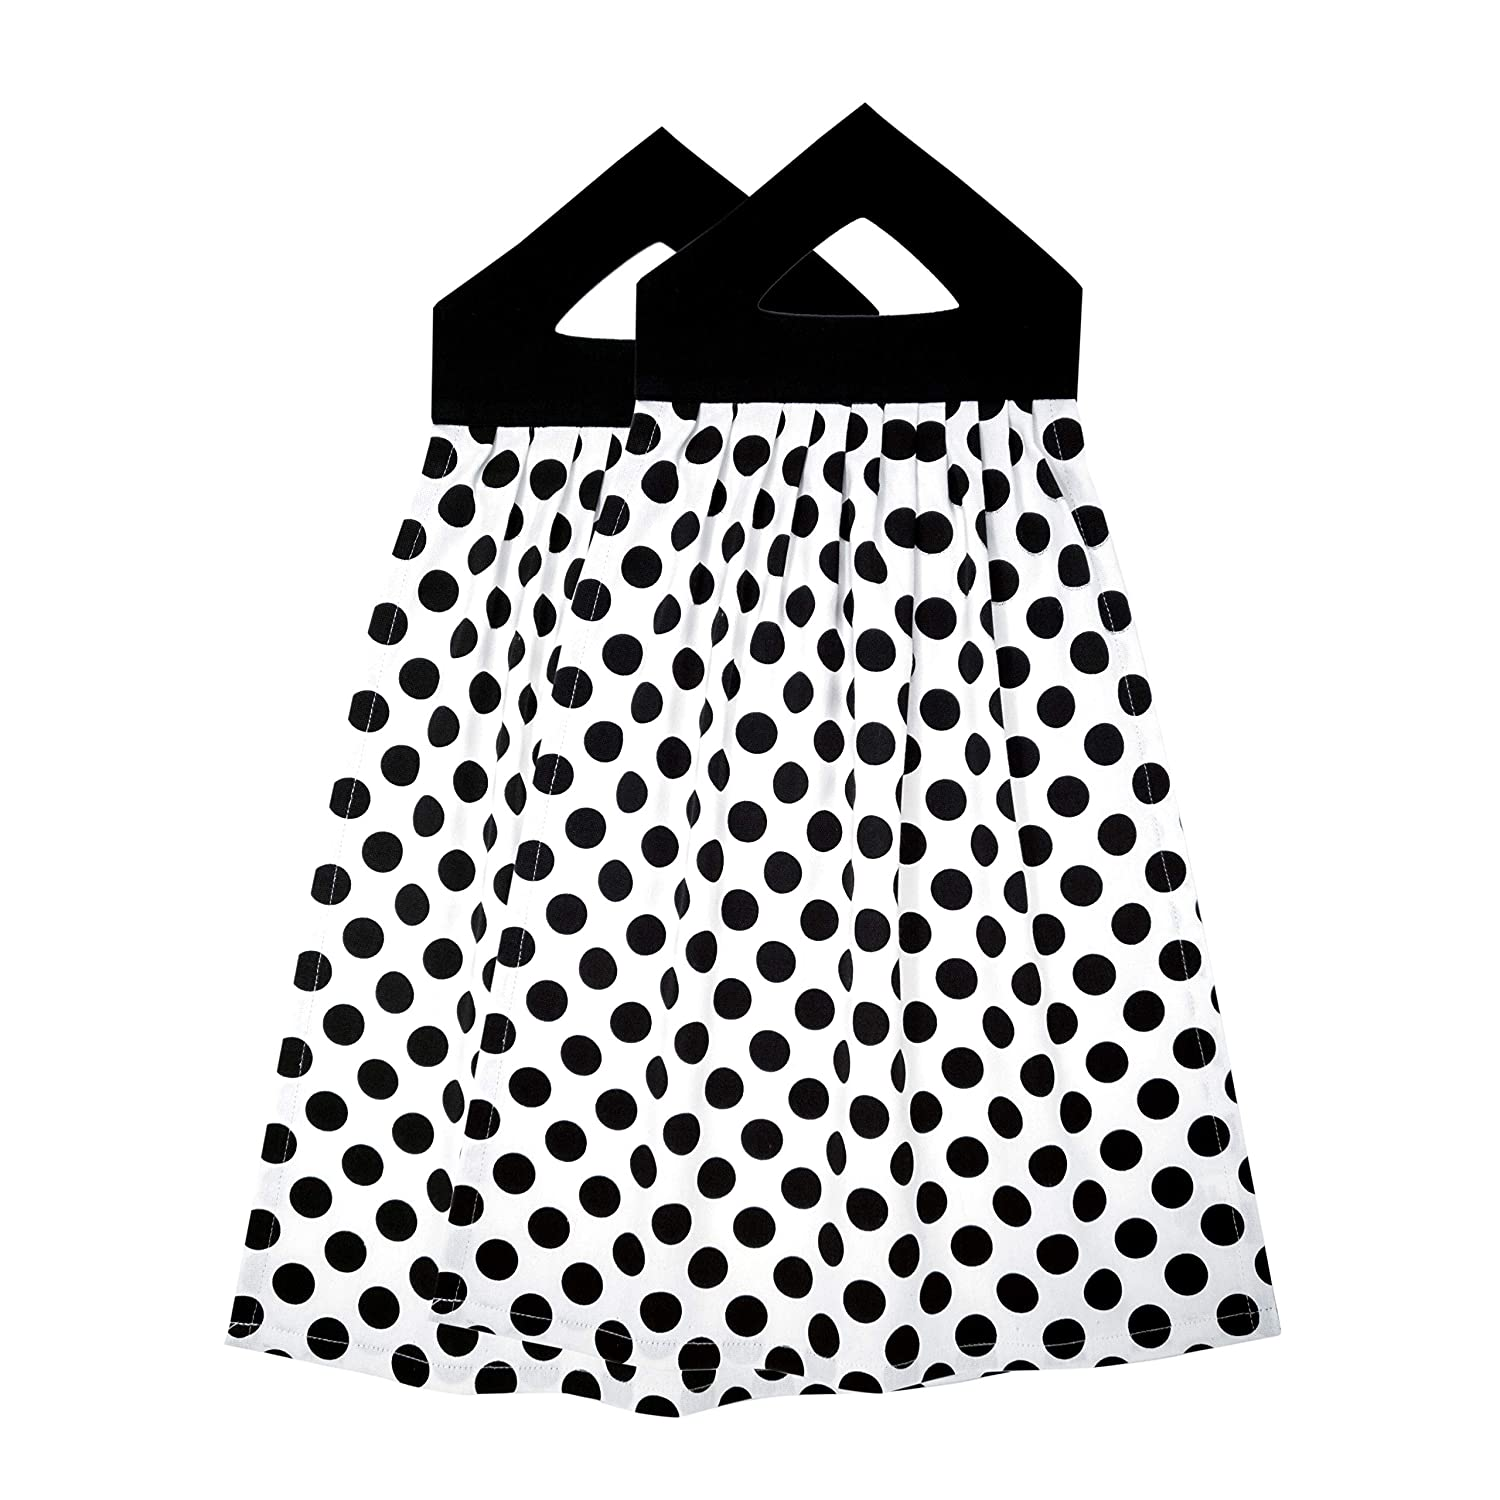 Banyan Central Printed Hanging Kitchen Towel | Black Polka Dots 100% Cotton 16x21 inches | 2-Pieces